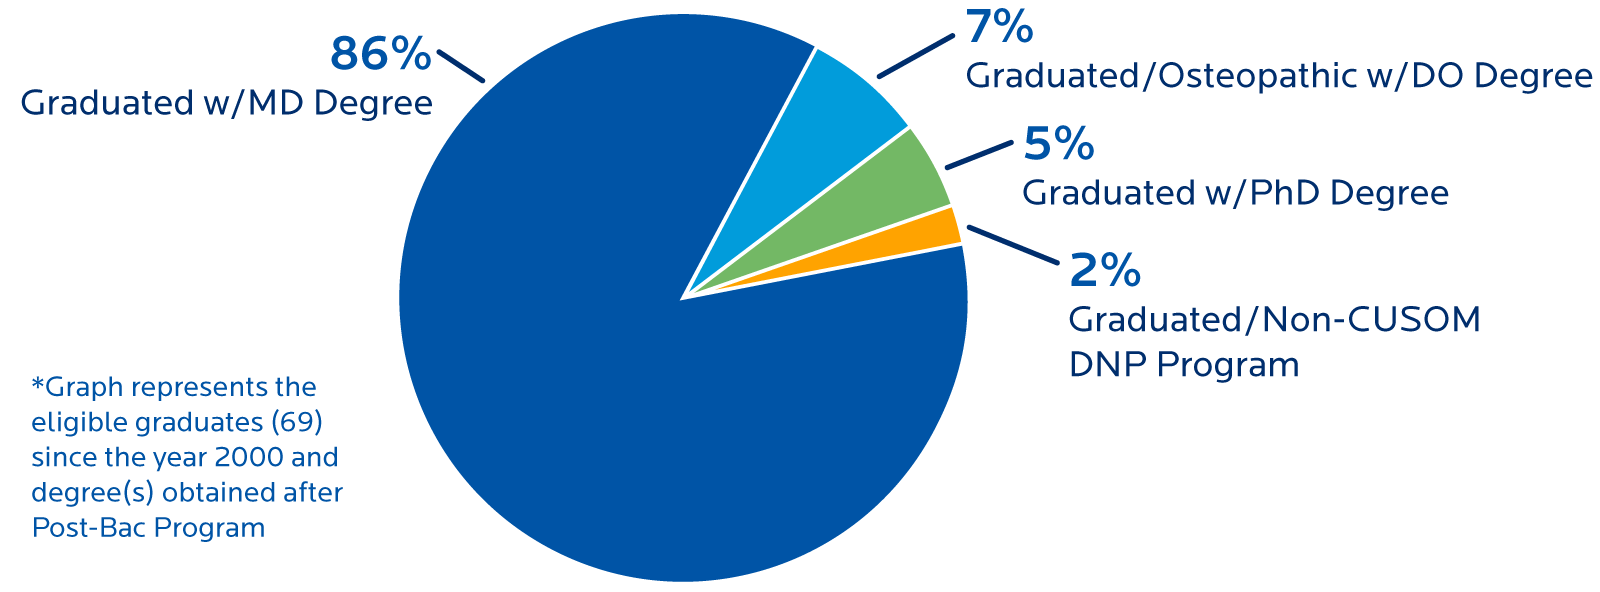 Pie charts with outcomes for graduates